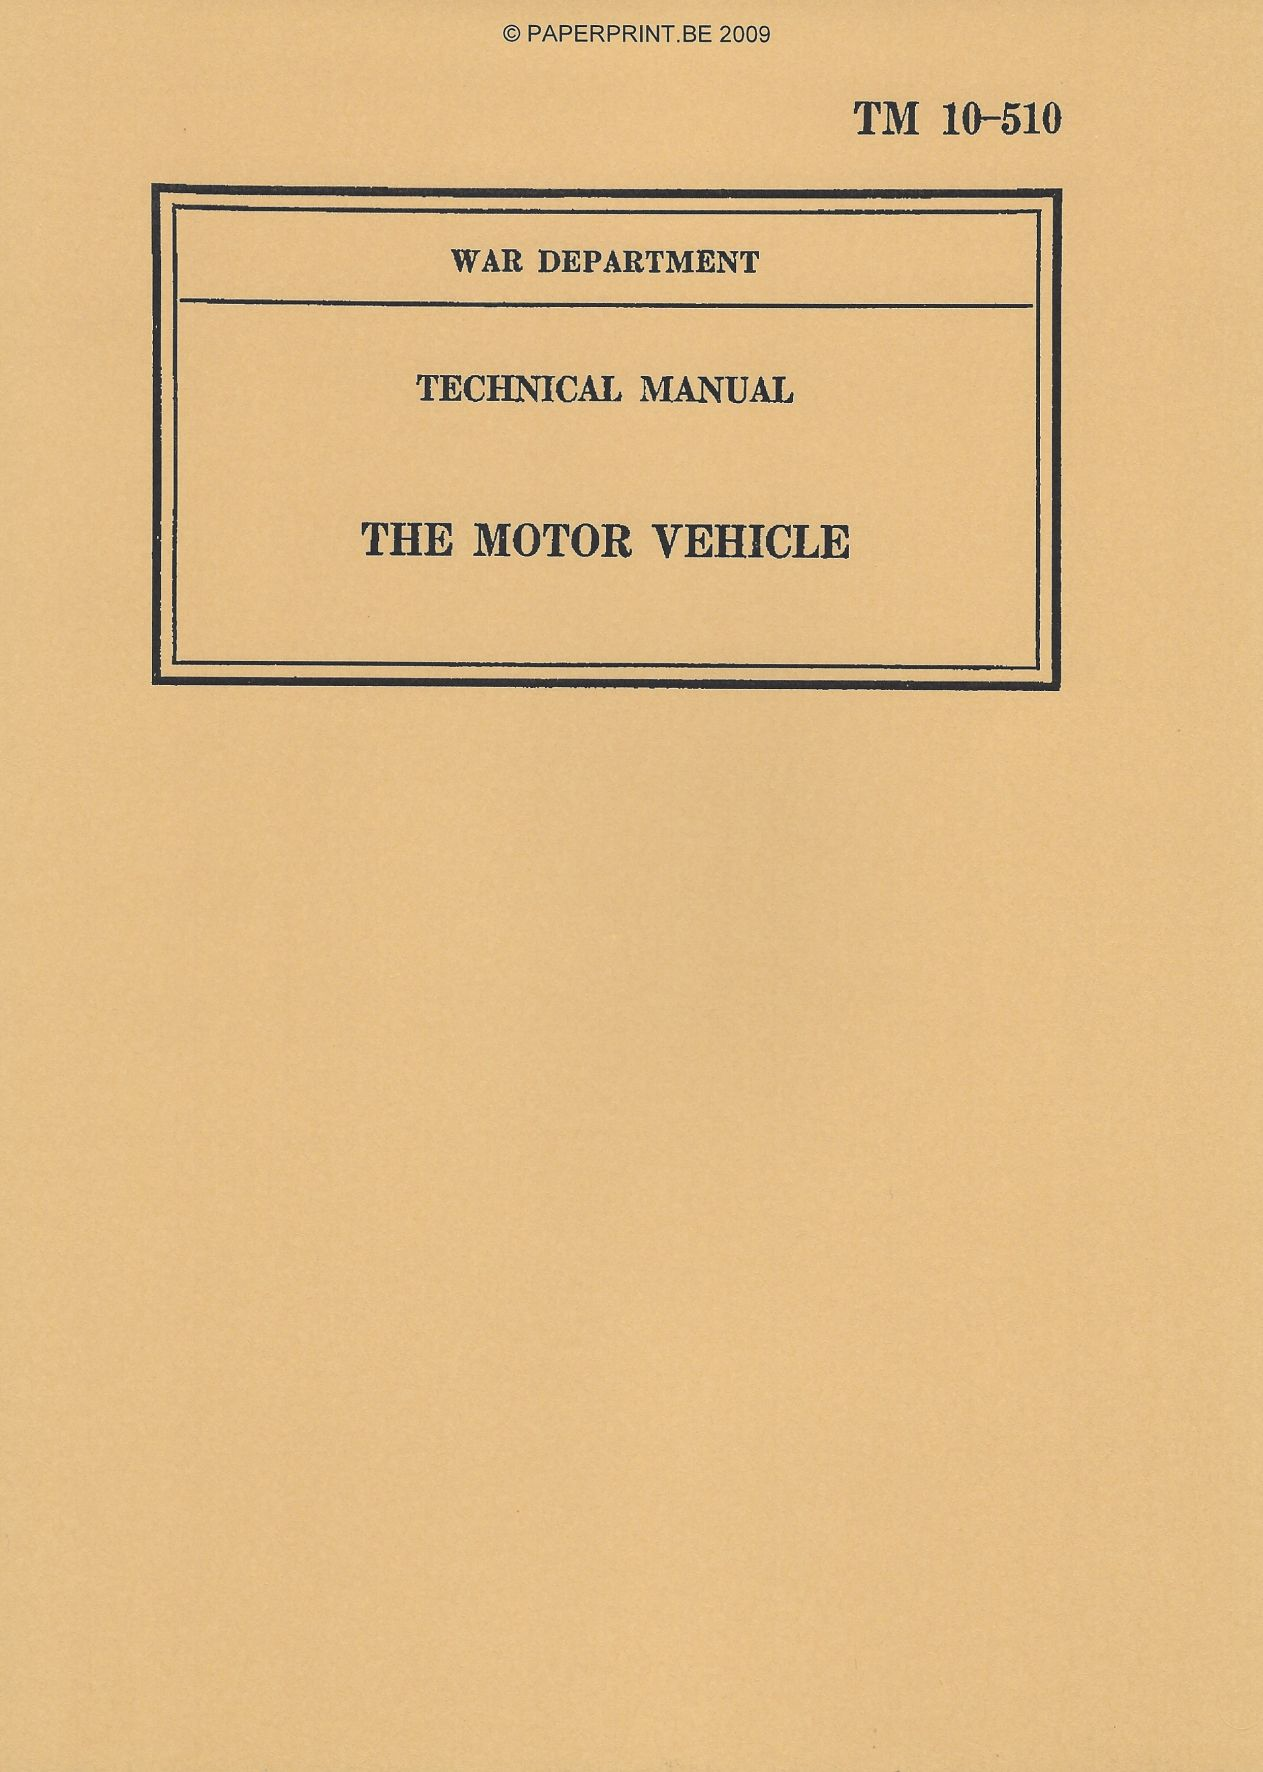 TM 10-510 US THE MOTOR VEHICLE